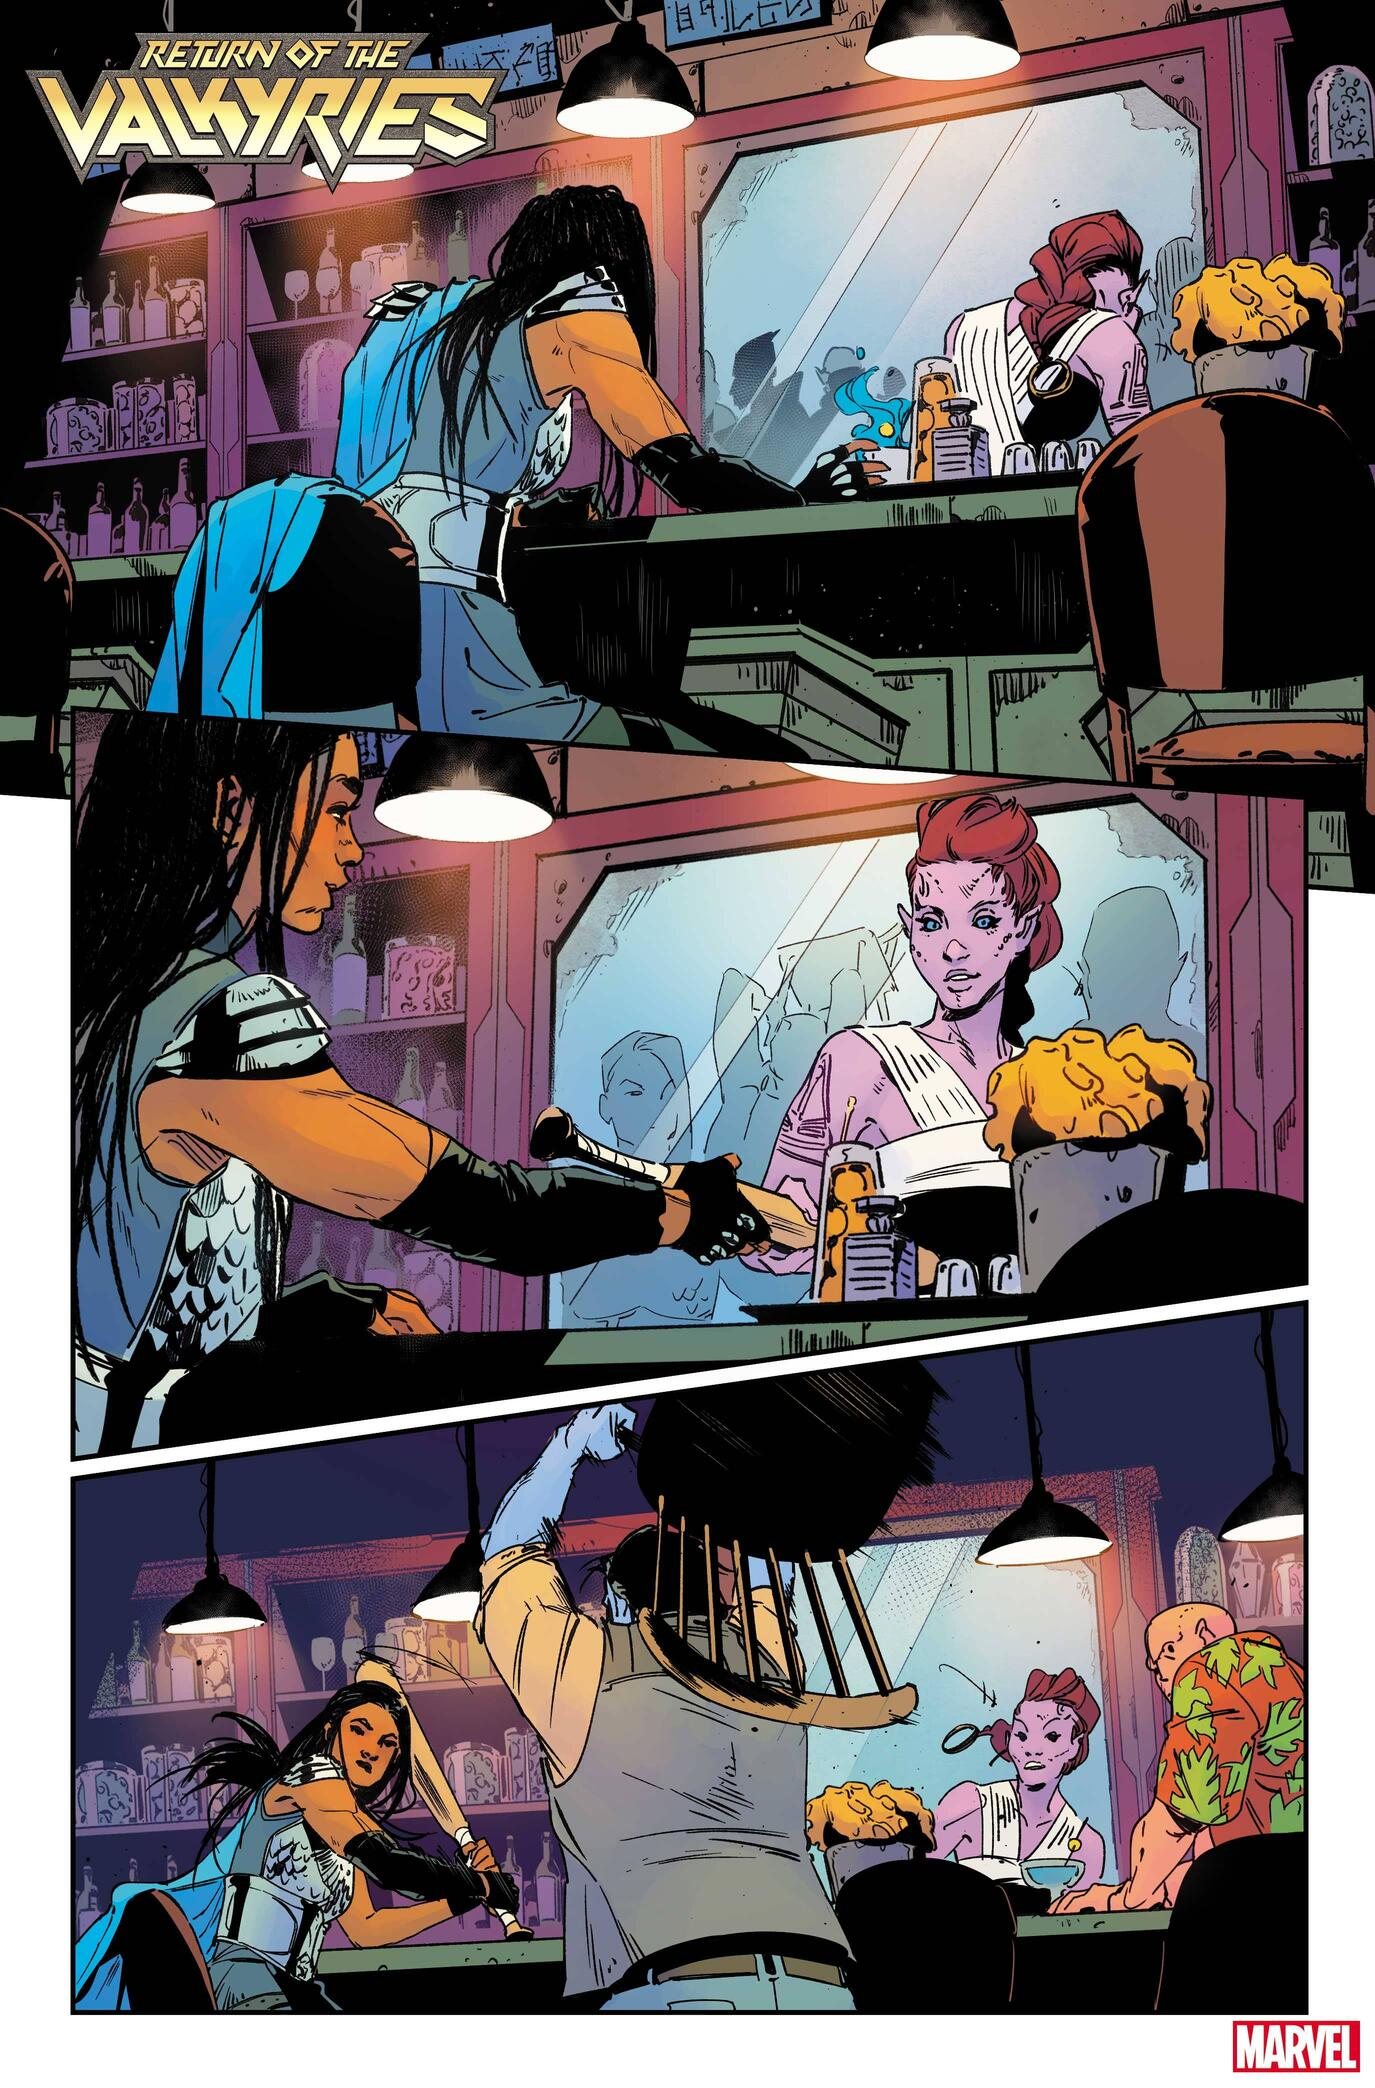 KING IN BLACK: RETURN OF THE VALKYRIES #1 preview interiors by Nina Vakueva with colors byTamra Bonvillain